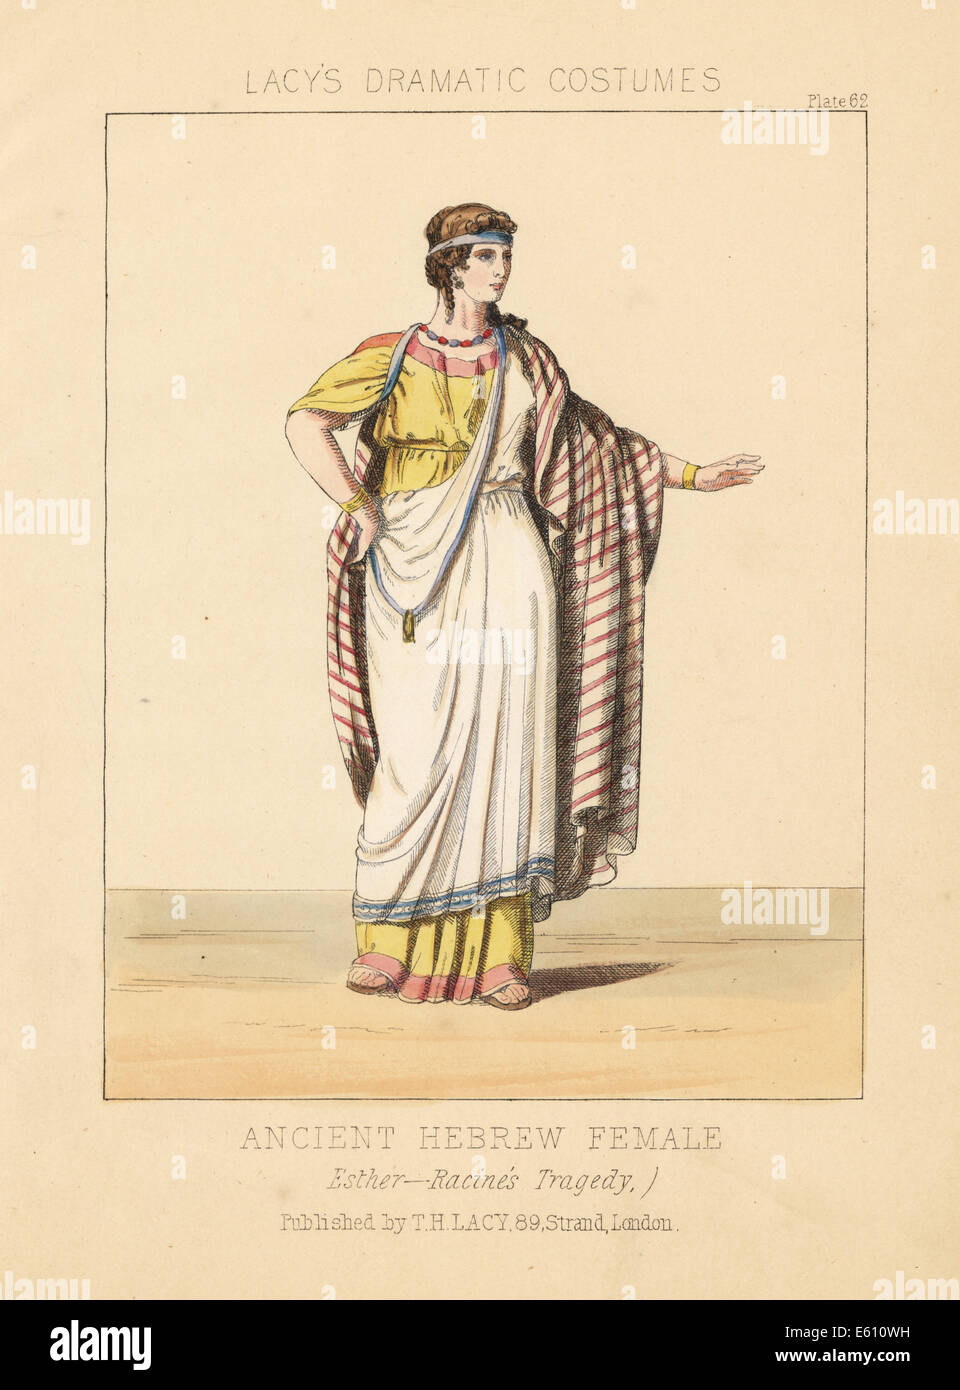 Ancient Hebrew female costume from Jean Racine's tragedy Esther. - Stock Image